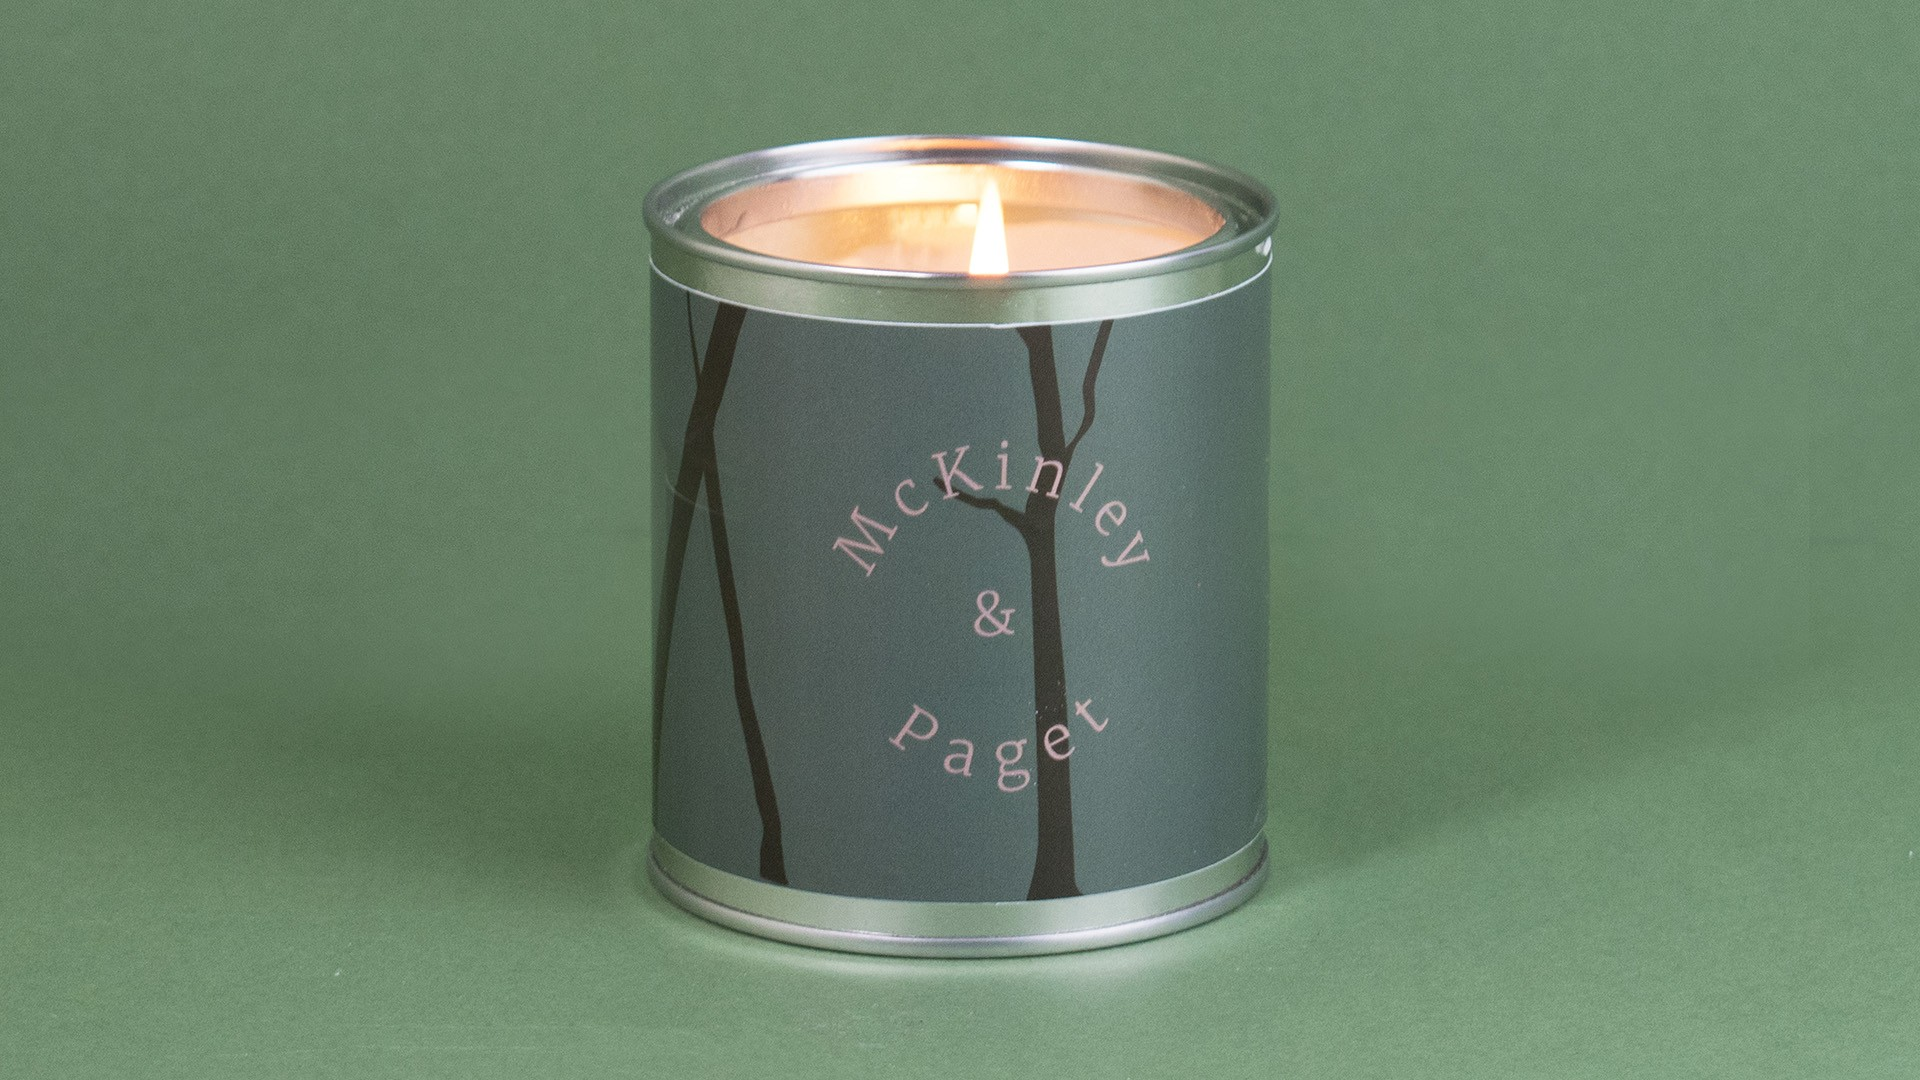 McKinley & Paget's Cabin Candle